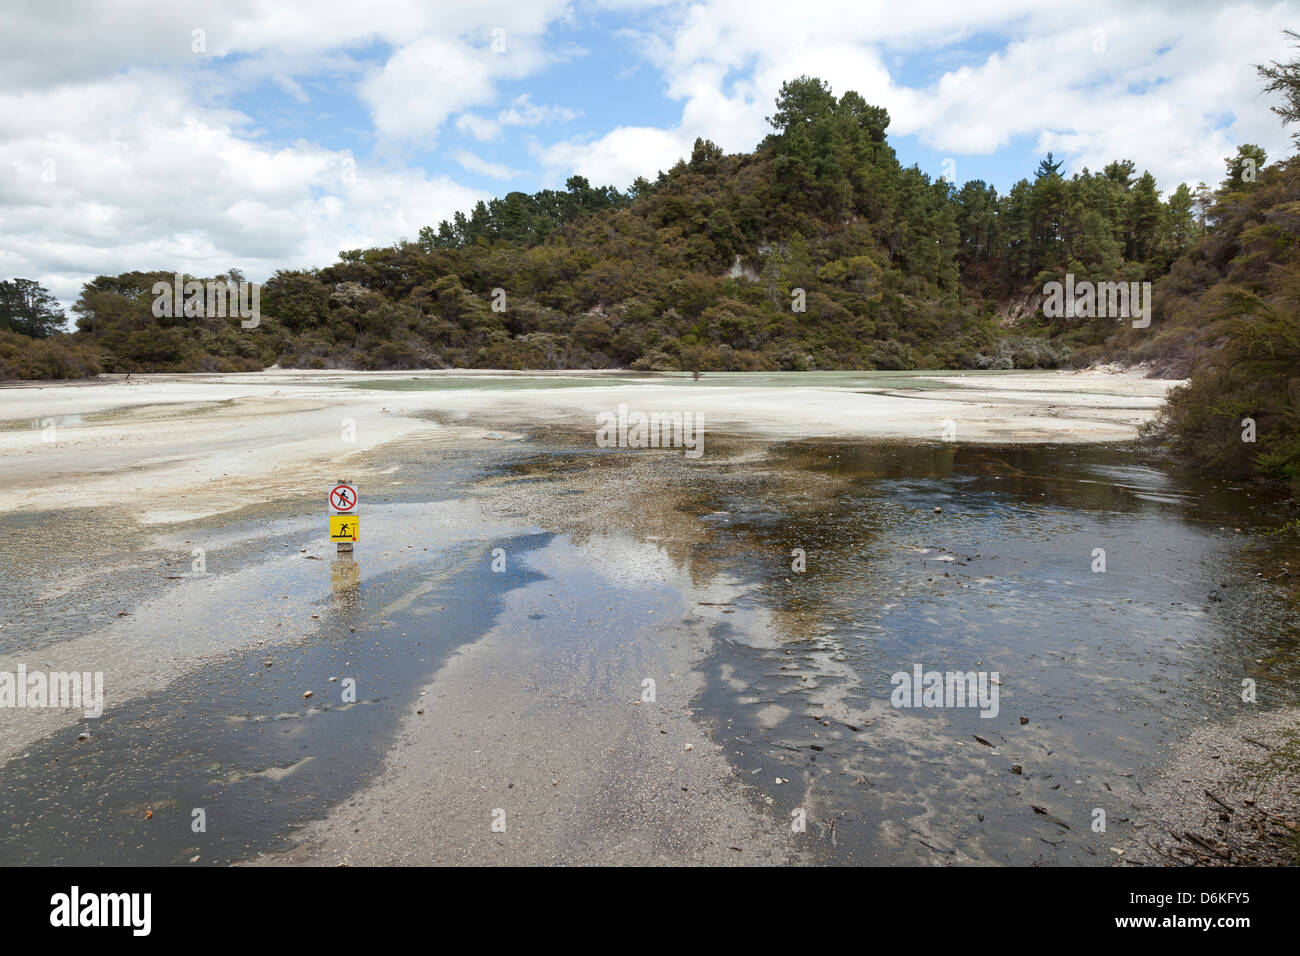 Frying pan flat in Wai-O-Tapu Geothermal Reserve Rotorua, New Zealand - Stock Image